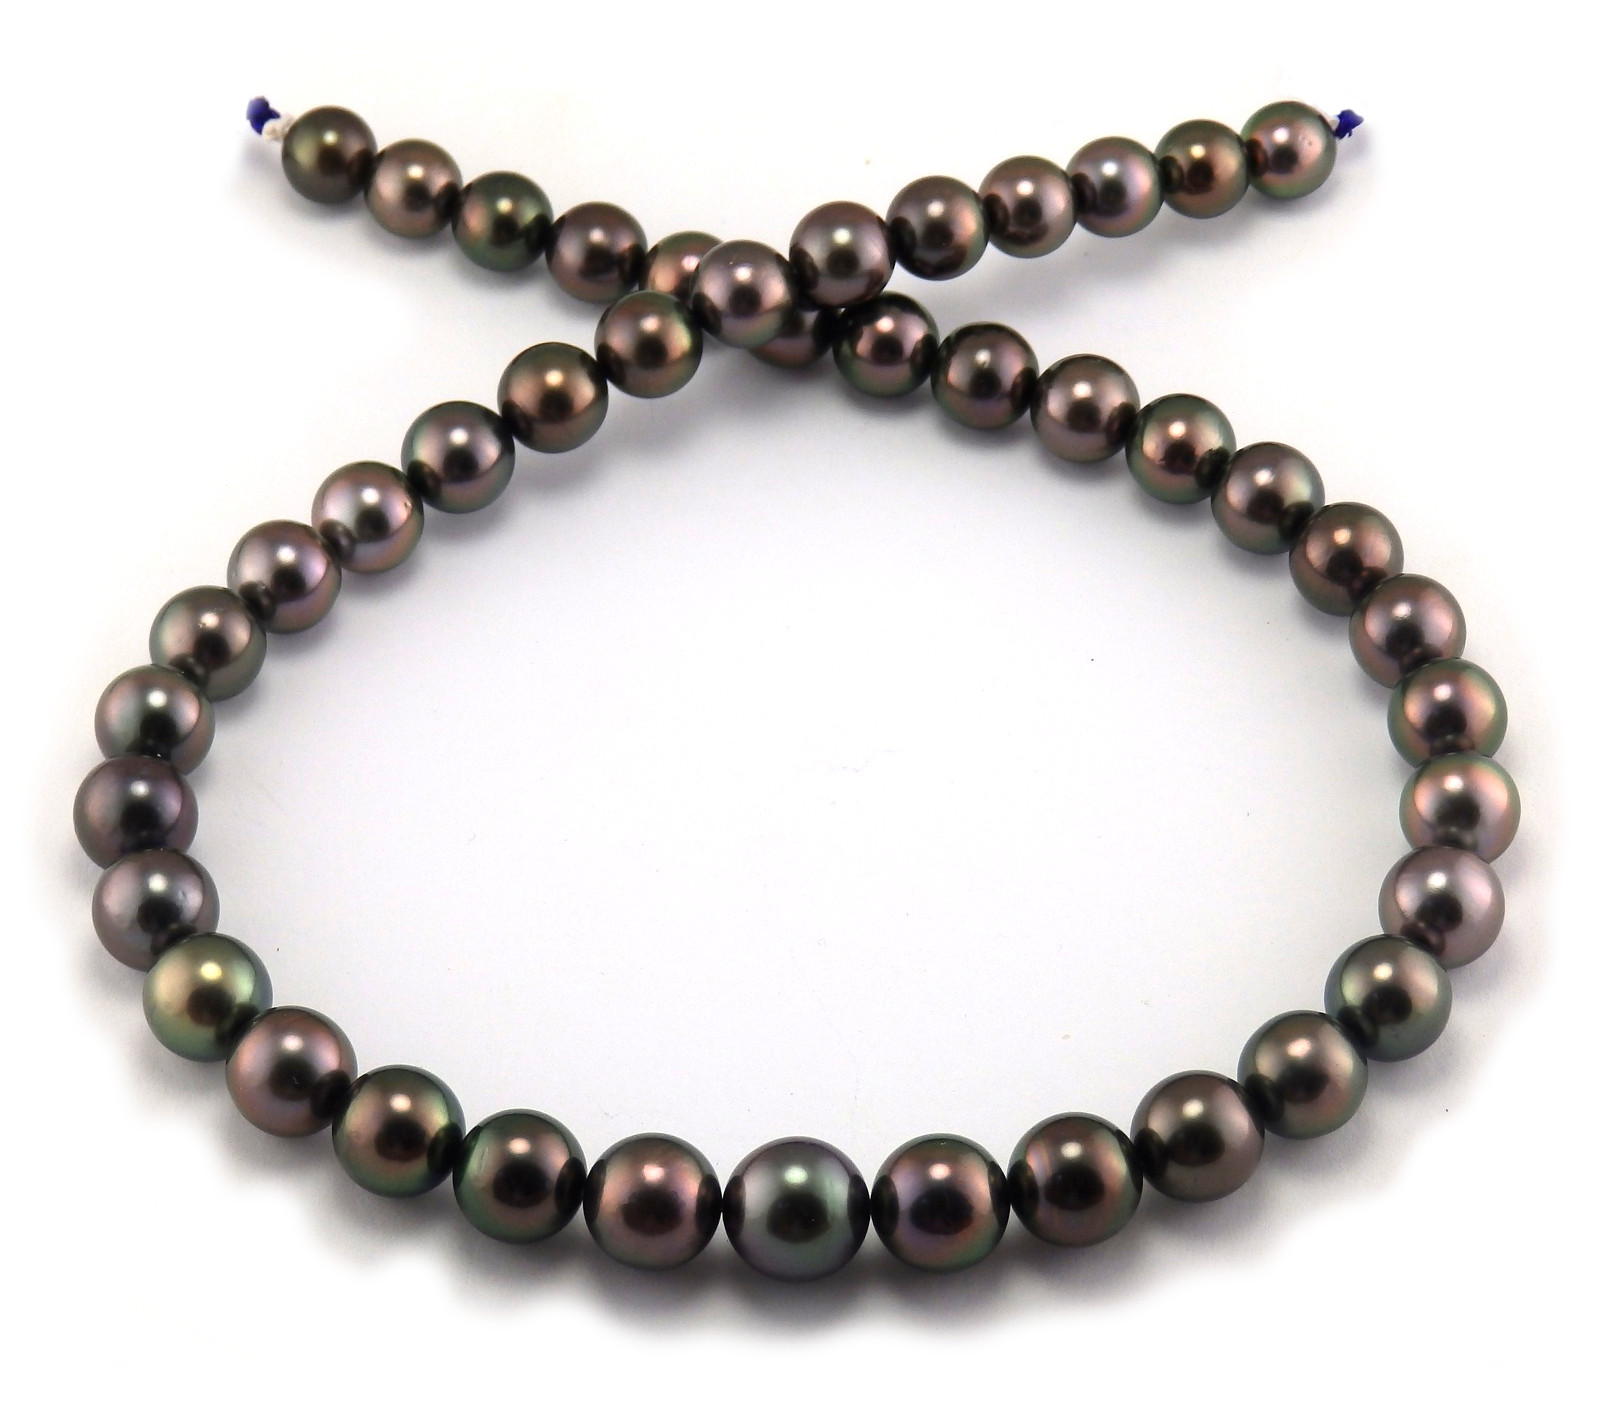 Aubergine Tahitian Pearl Necklace with Purple/Green Overtone